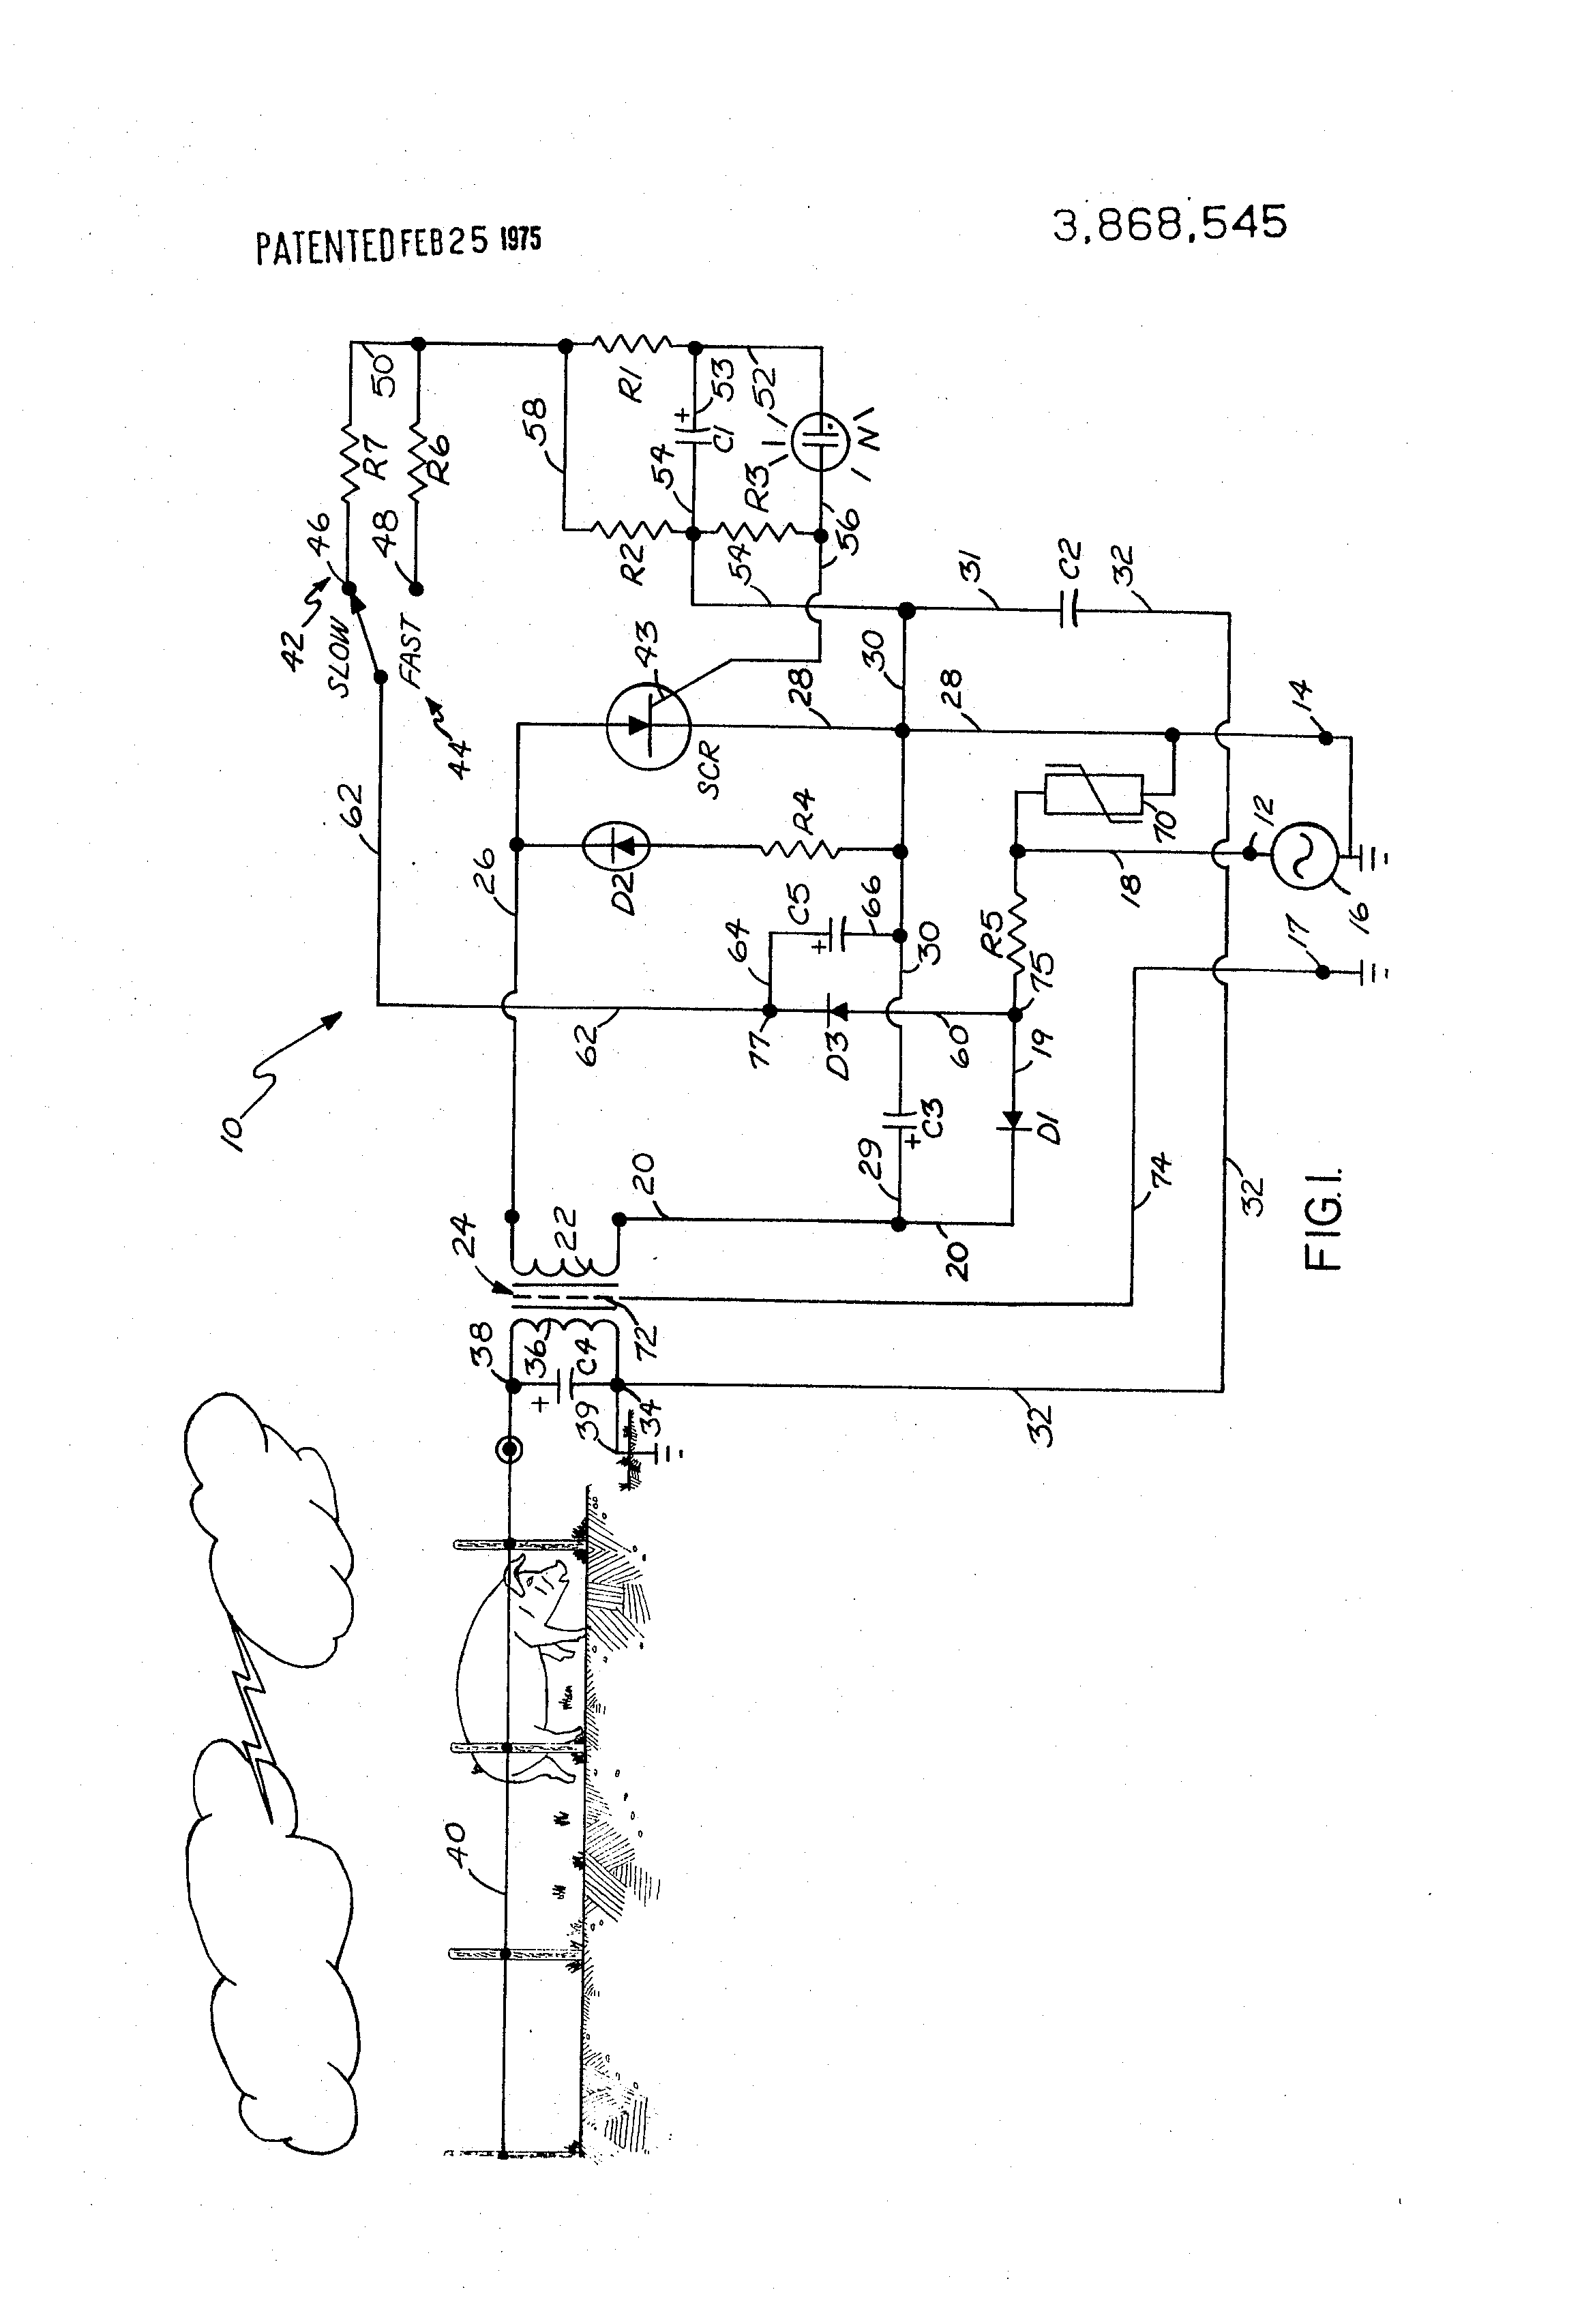 brevet us3868545 variable frequency electric fence charging Best Electric Fence for Horses patent drawing